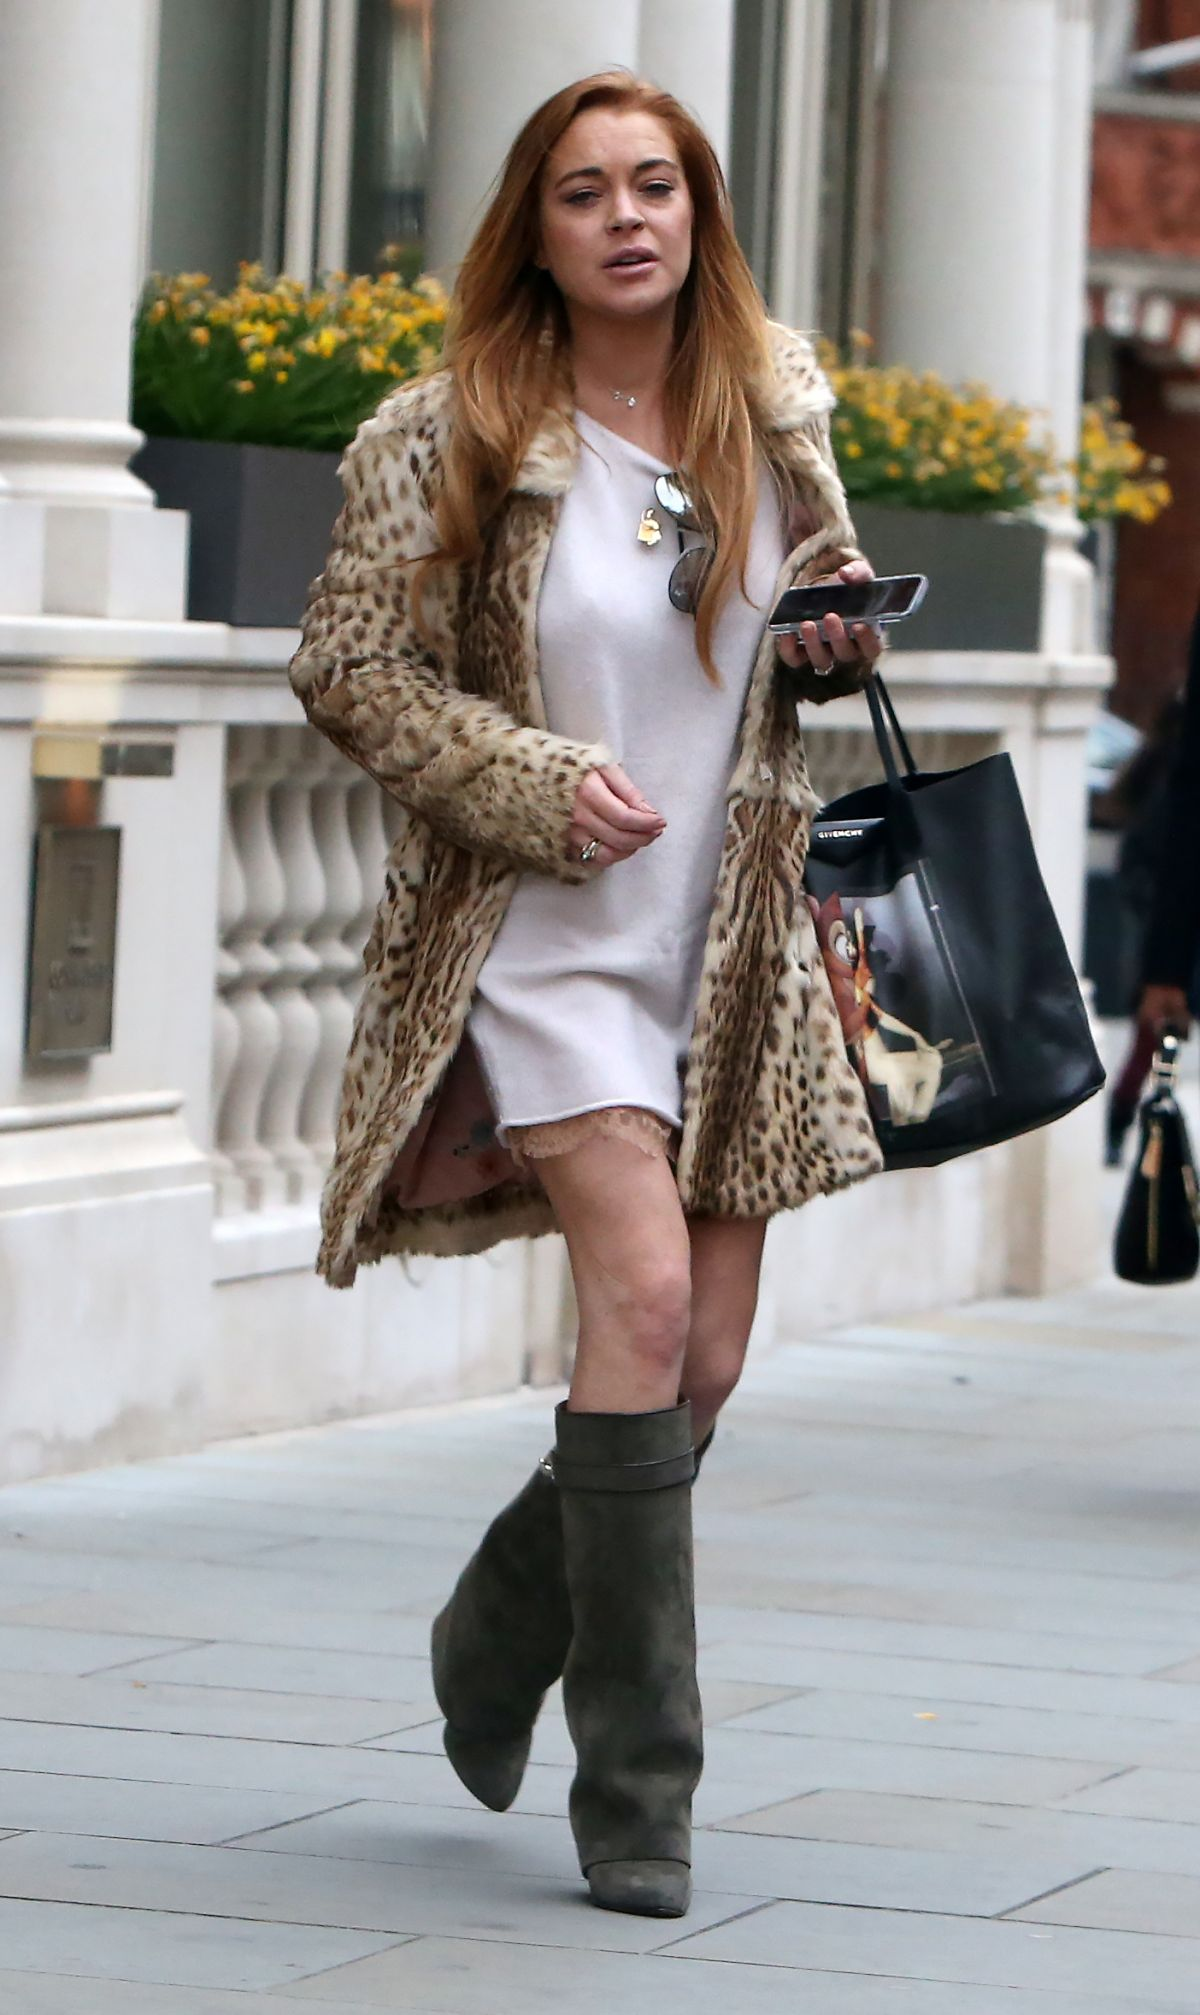 LINDSAY LOHAN Leaves The Conaught Hotel in London